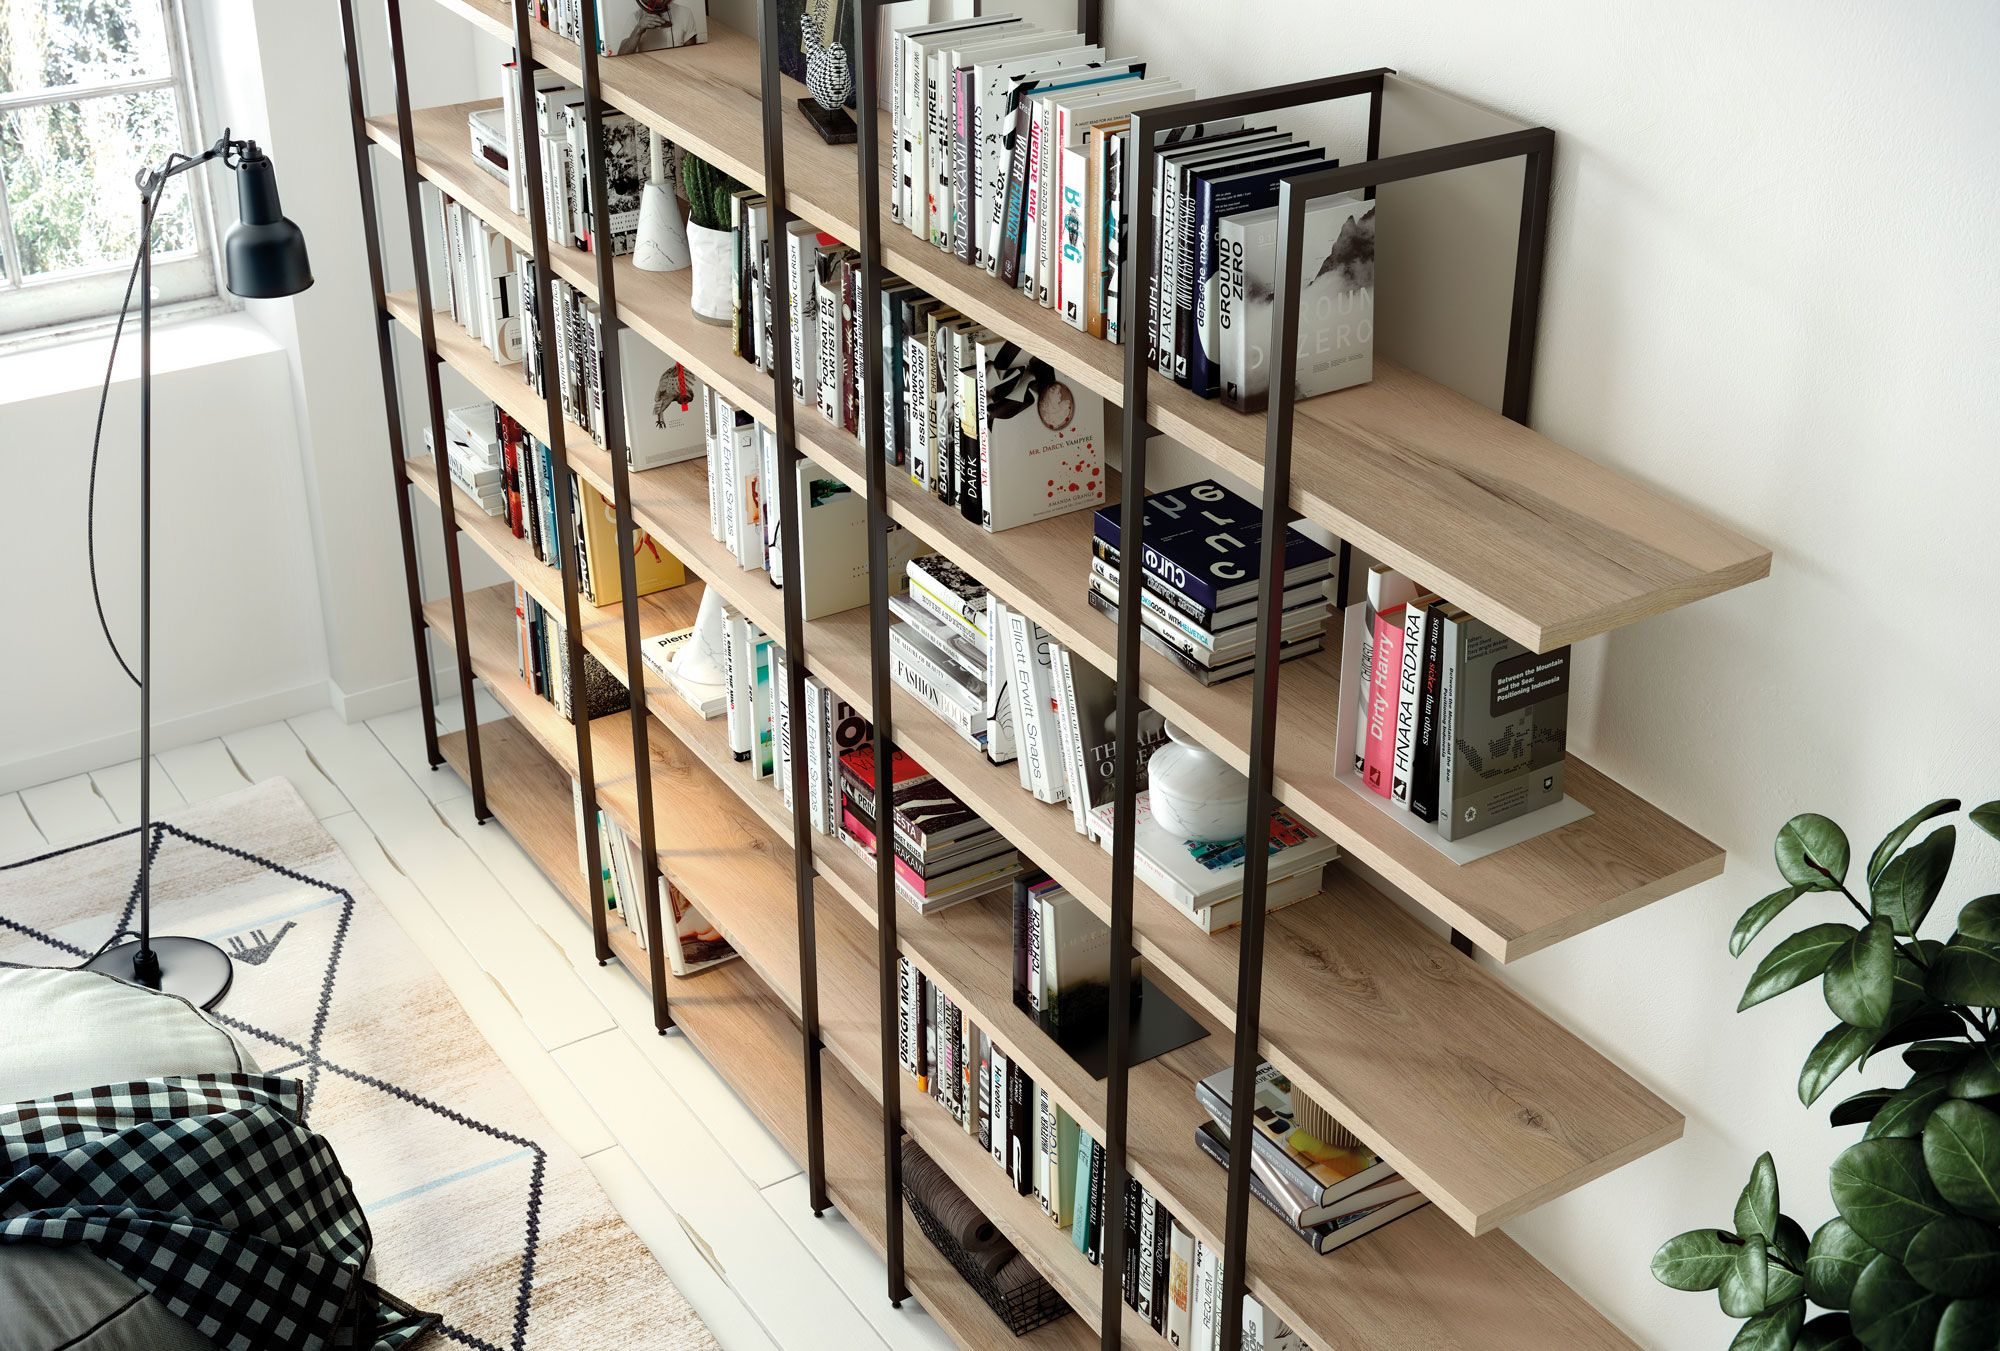 OLUT Nordic style furniture in 2019 | Nordic style ...